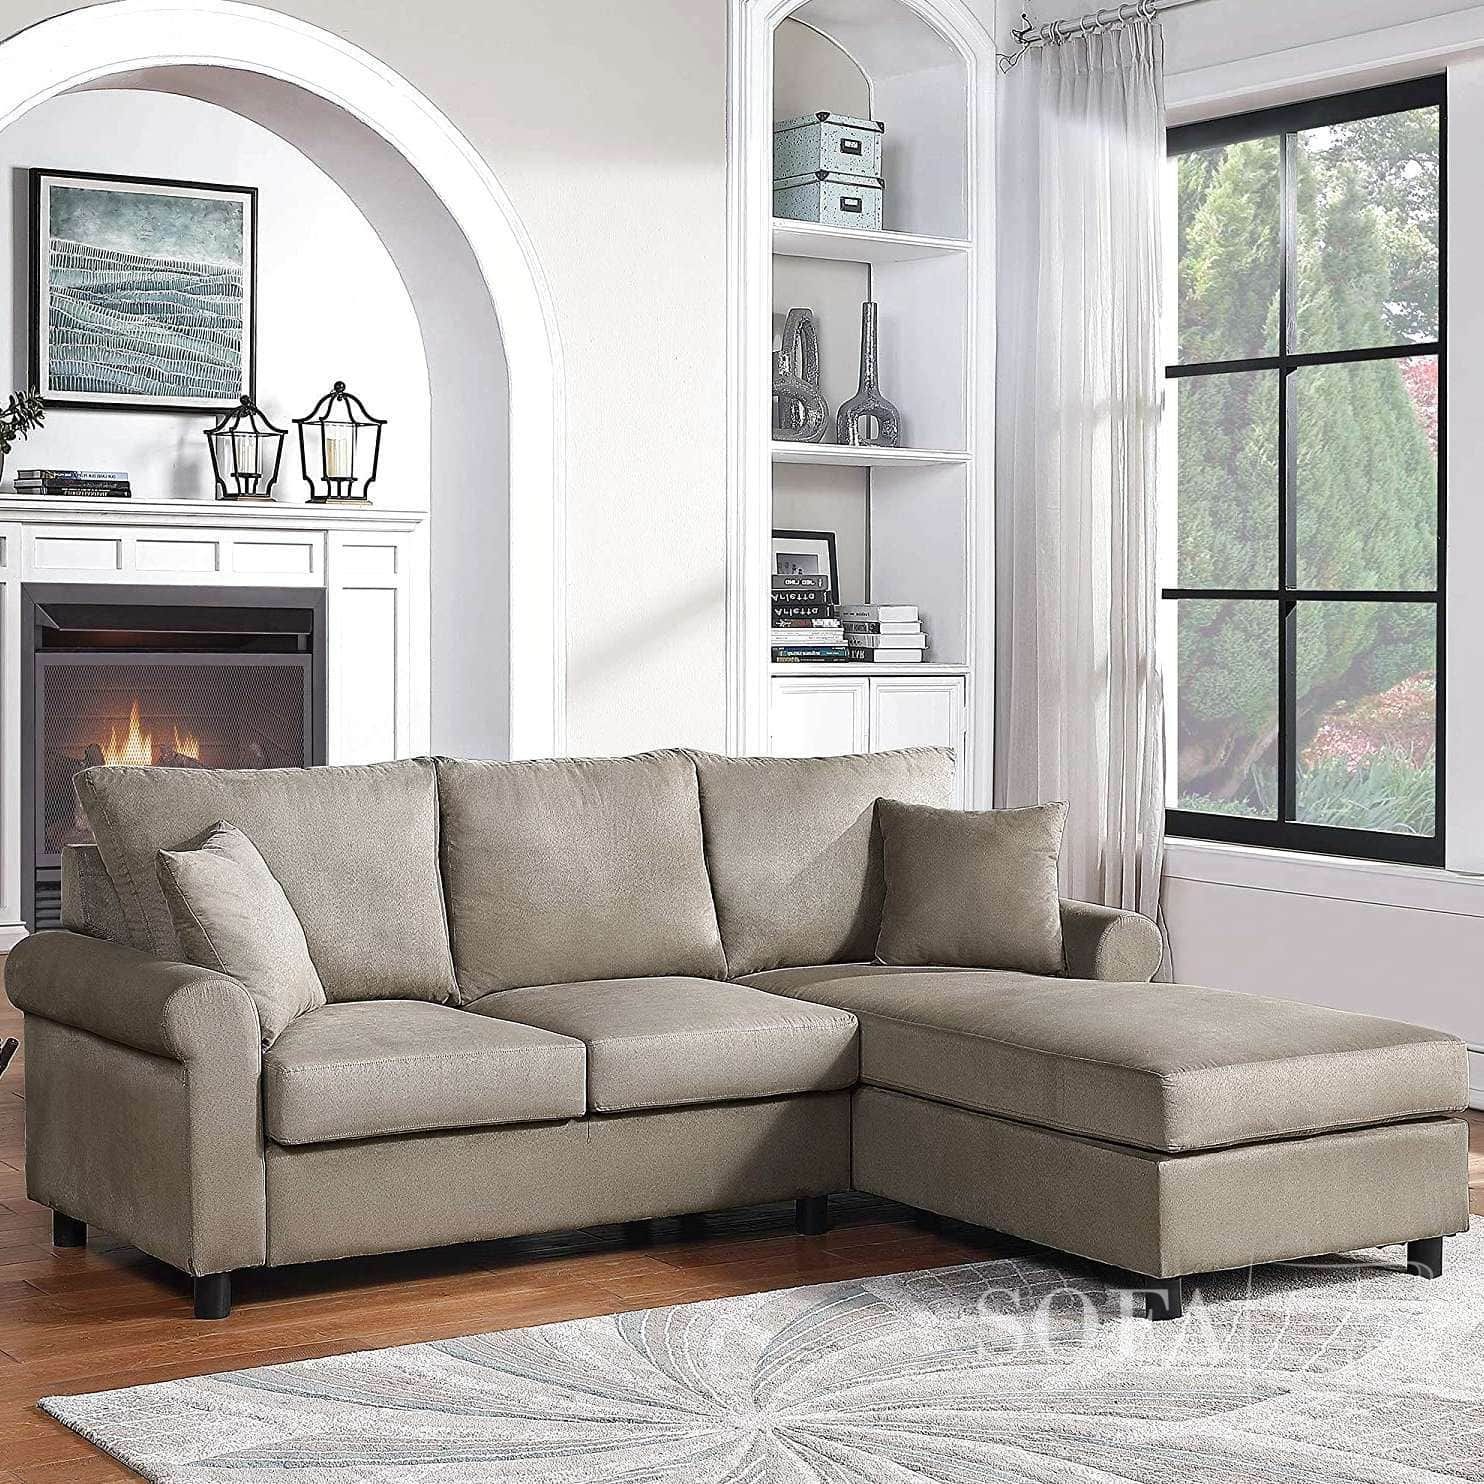 Top 5 Sectional Sofas Under 600 Style Comfort